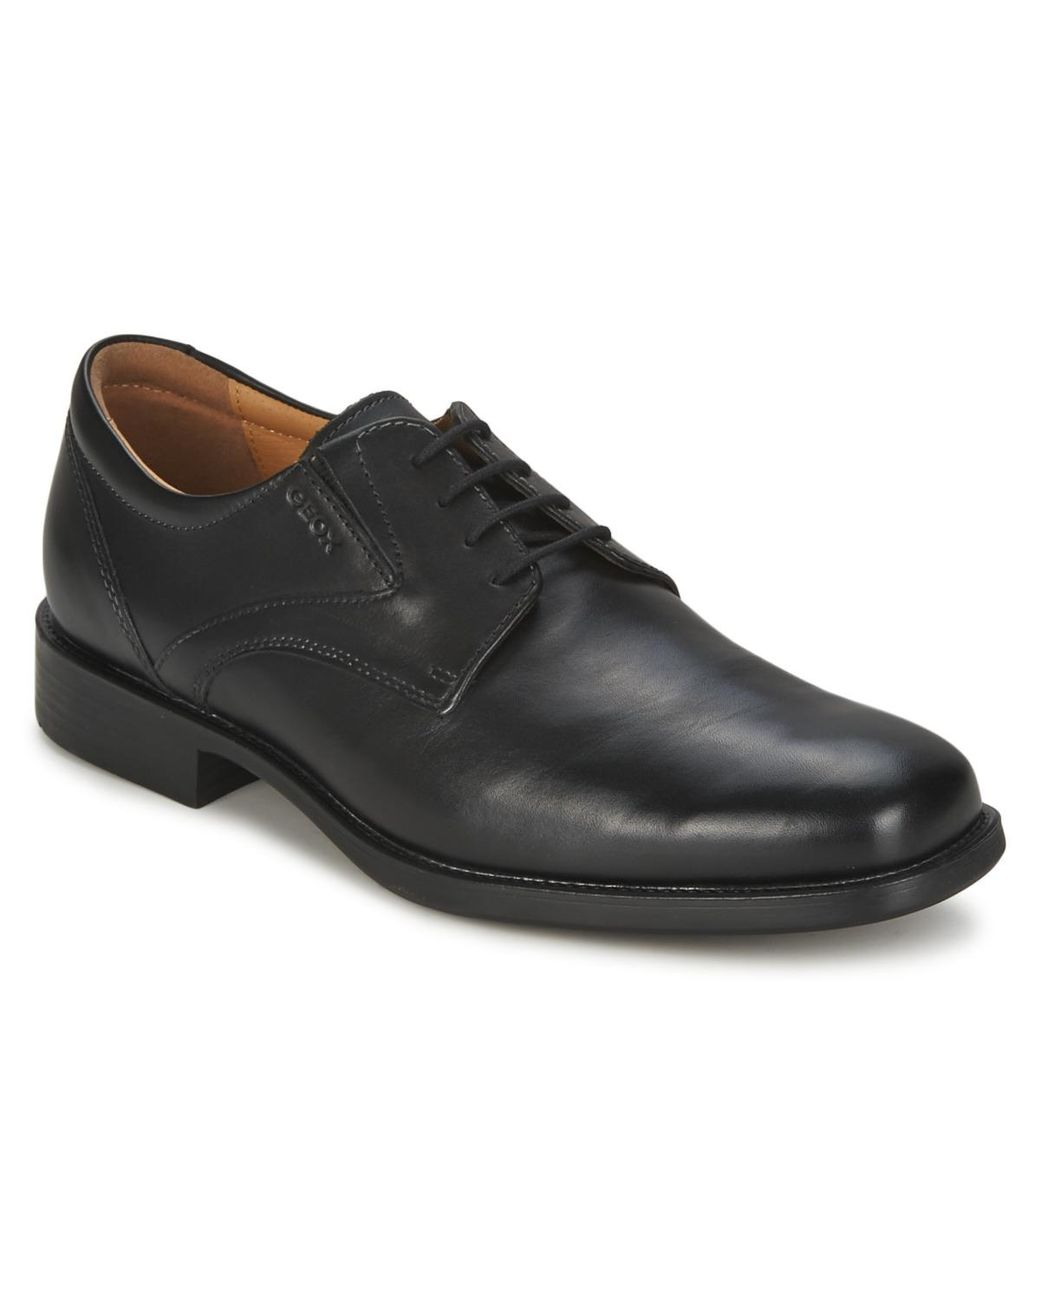 geox outlet, Men Formal Shoes Geox UOMO FEDERICO Smart